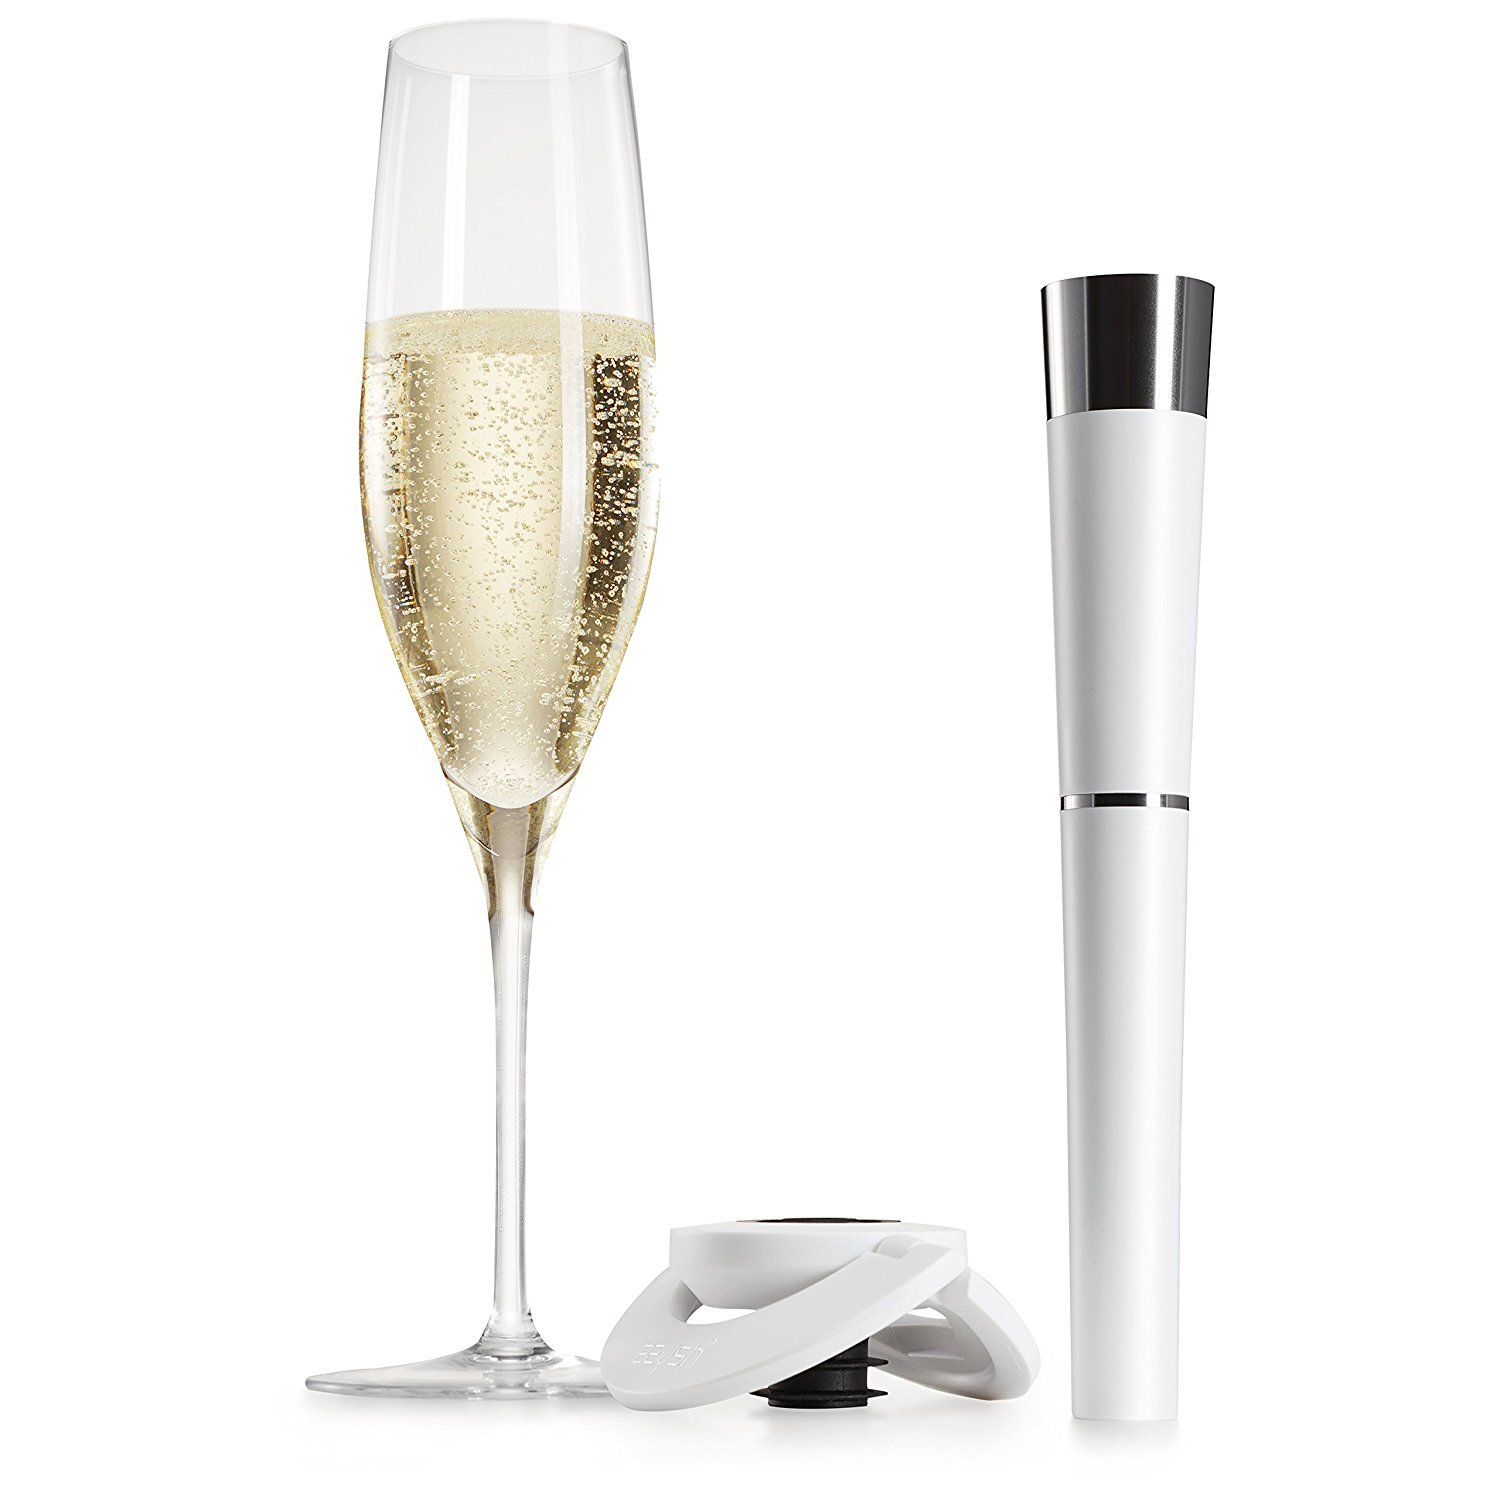 Champagne Preserver and Champagne Stopper by zzysh - Argon Gas/CO2 Champagne Saver - The Most Effective Way to Keep Sparkling Wine Fresh After it is Opened by zzysh (Image #1)